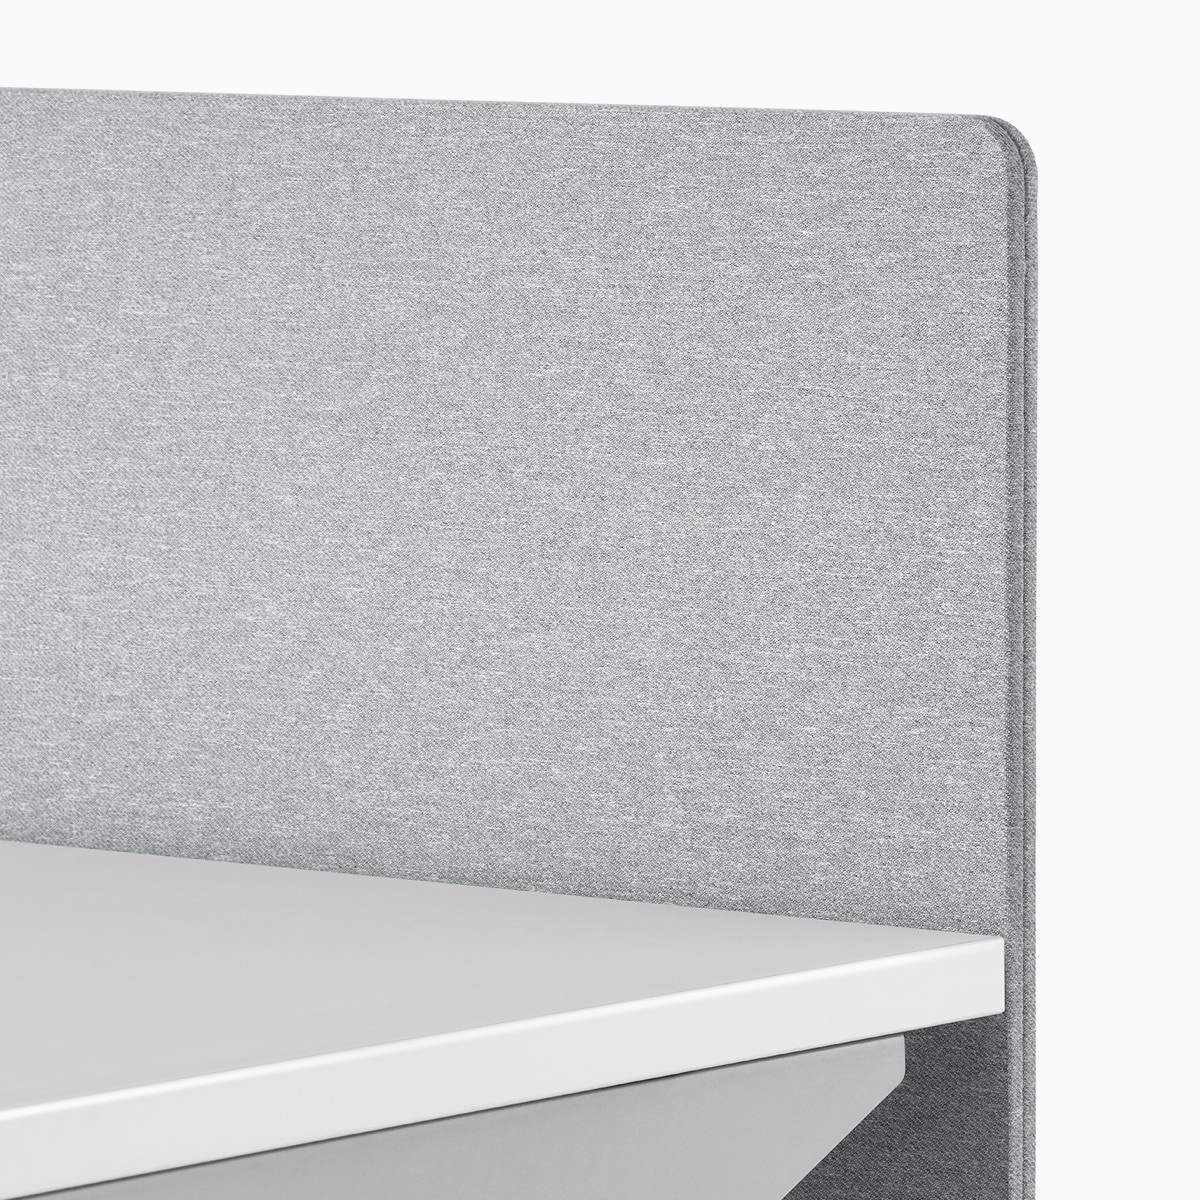 A close-up view of a gray fabric screen attached to the surface of a Nevi standing desk.